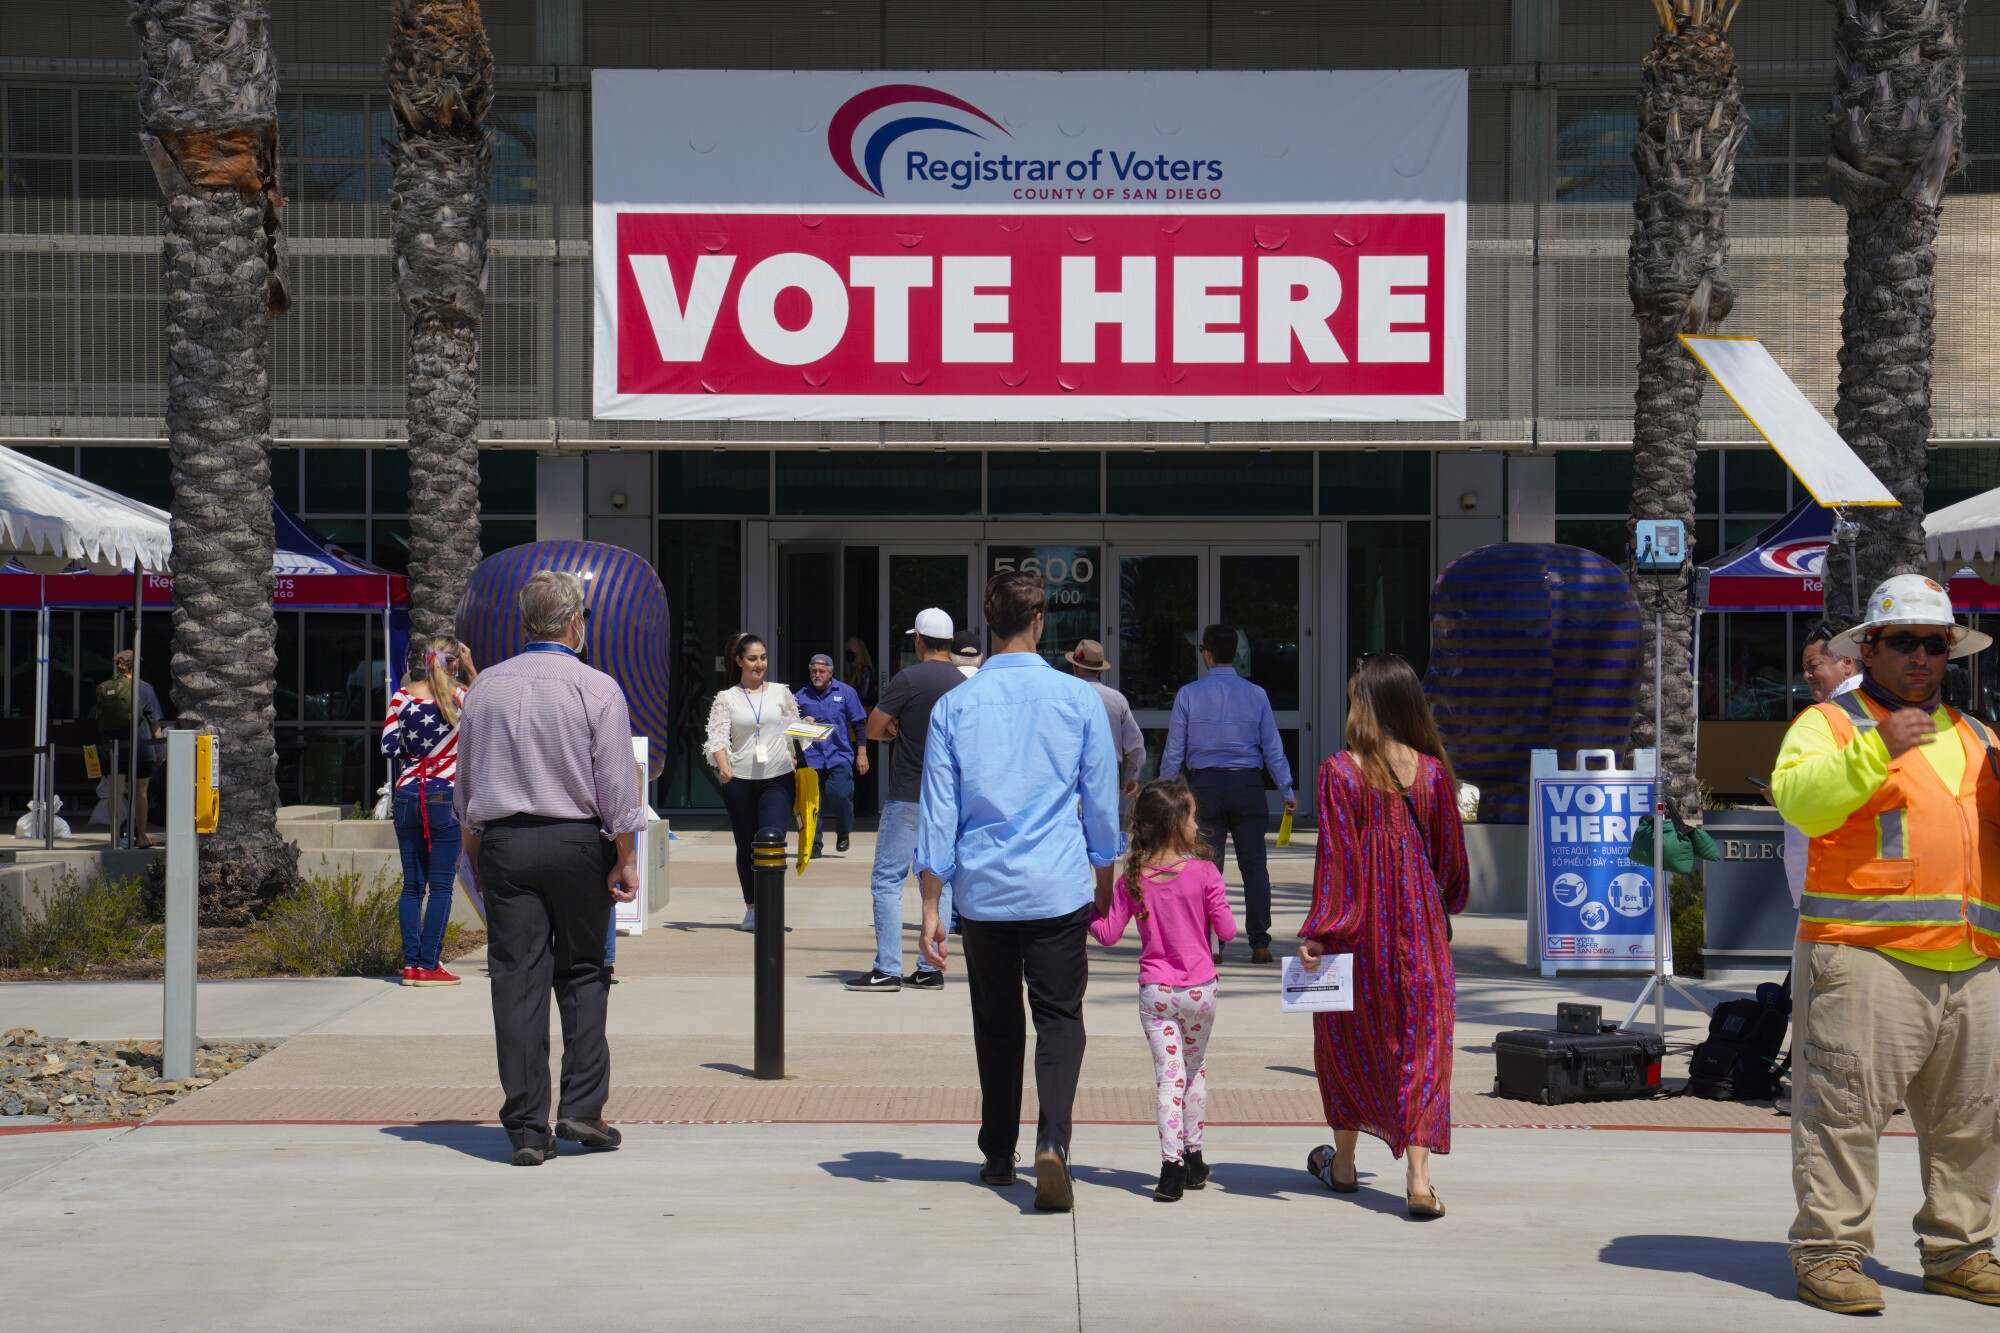 Voters arrive at Registrar of Voters office in on Kearny Mesa to cast their ballots on Tuesday.